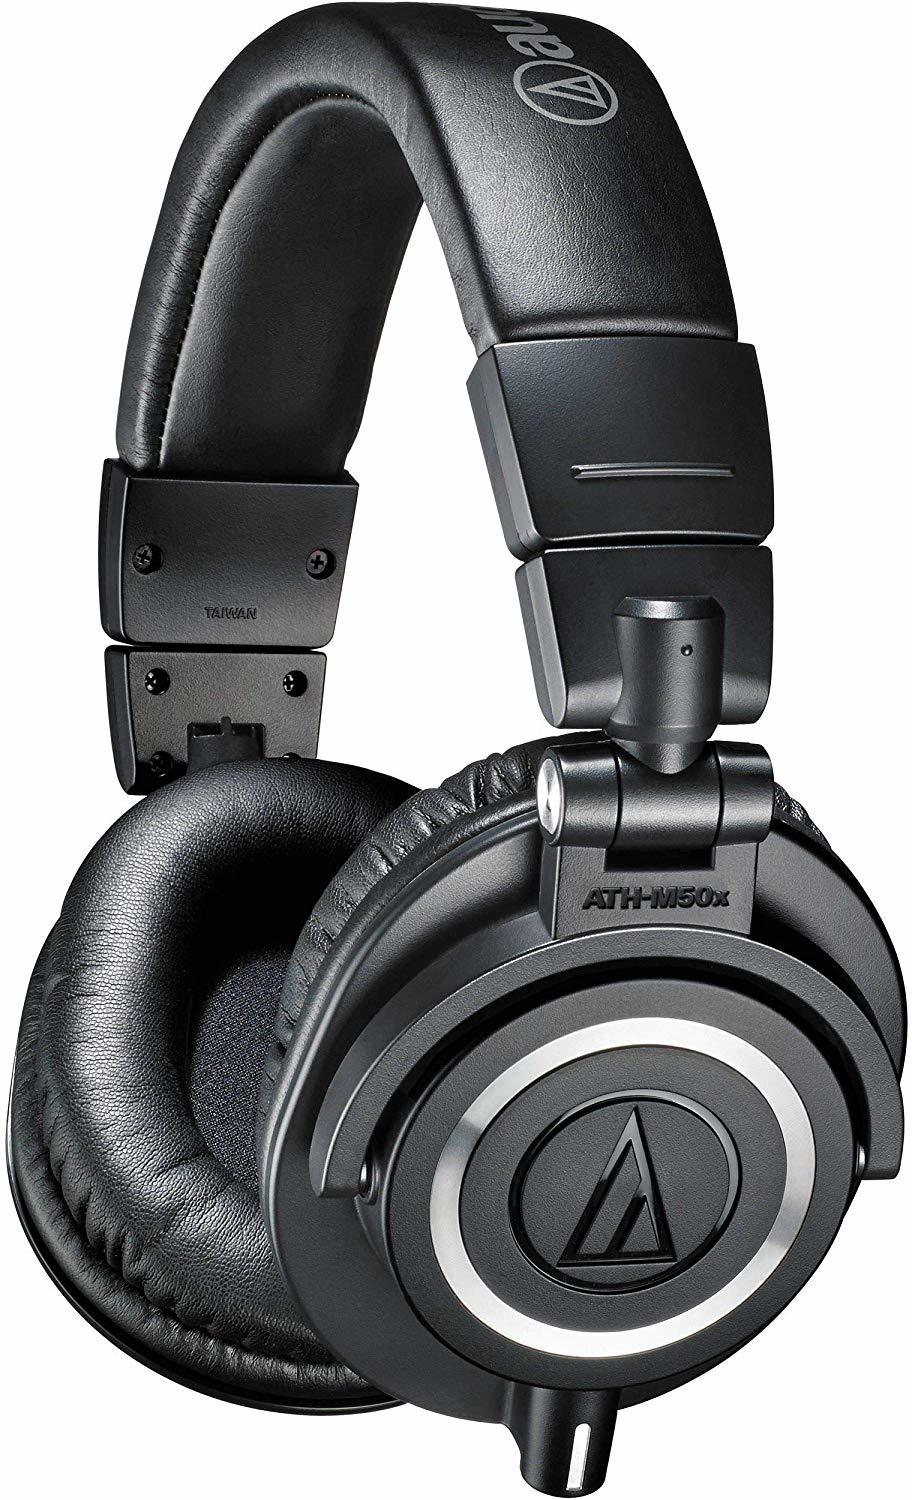 Audio-Technica studio headphones